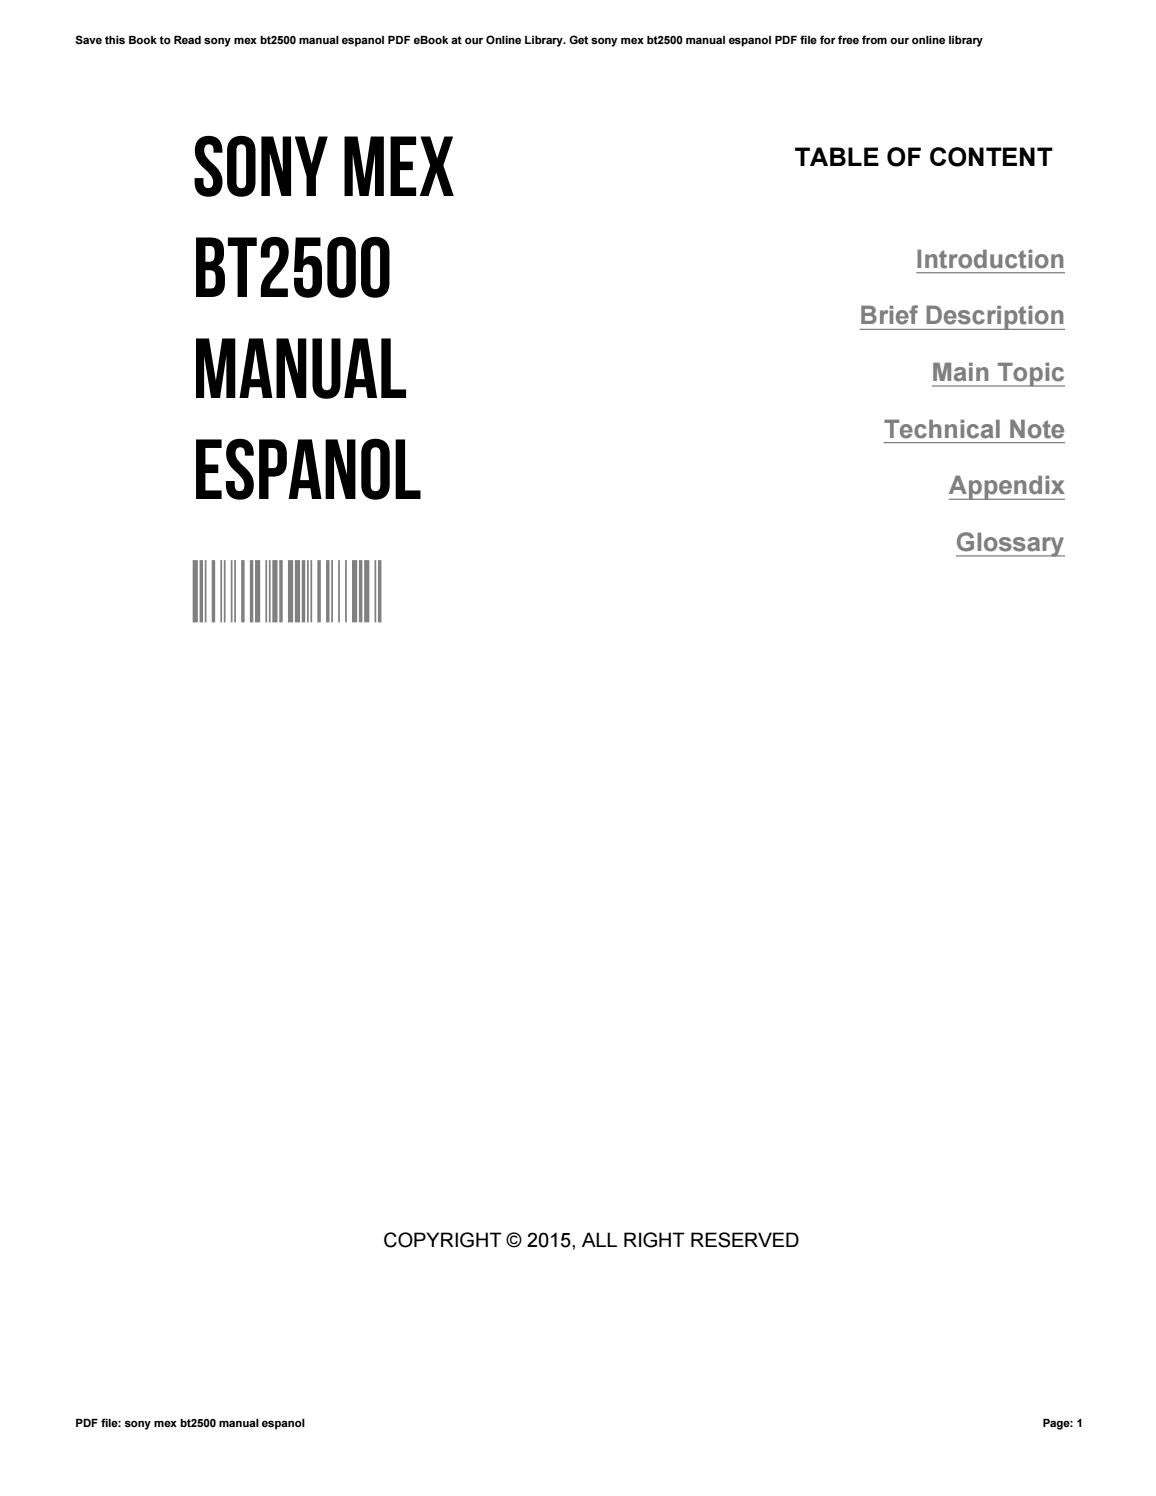 sony mex bt2500 manual espanol by russelldavis3262 issuu